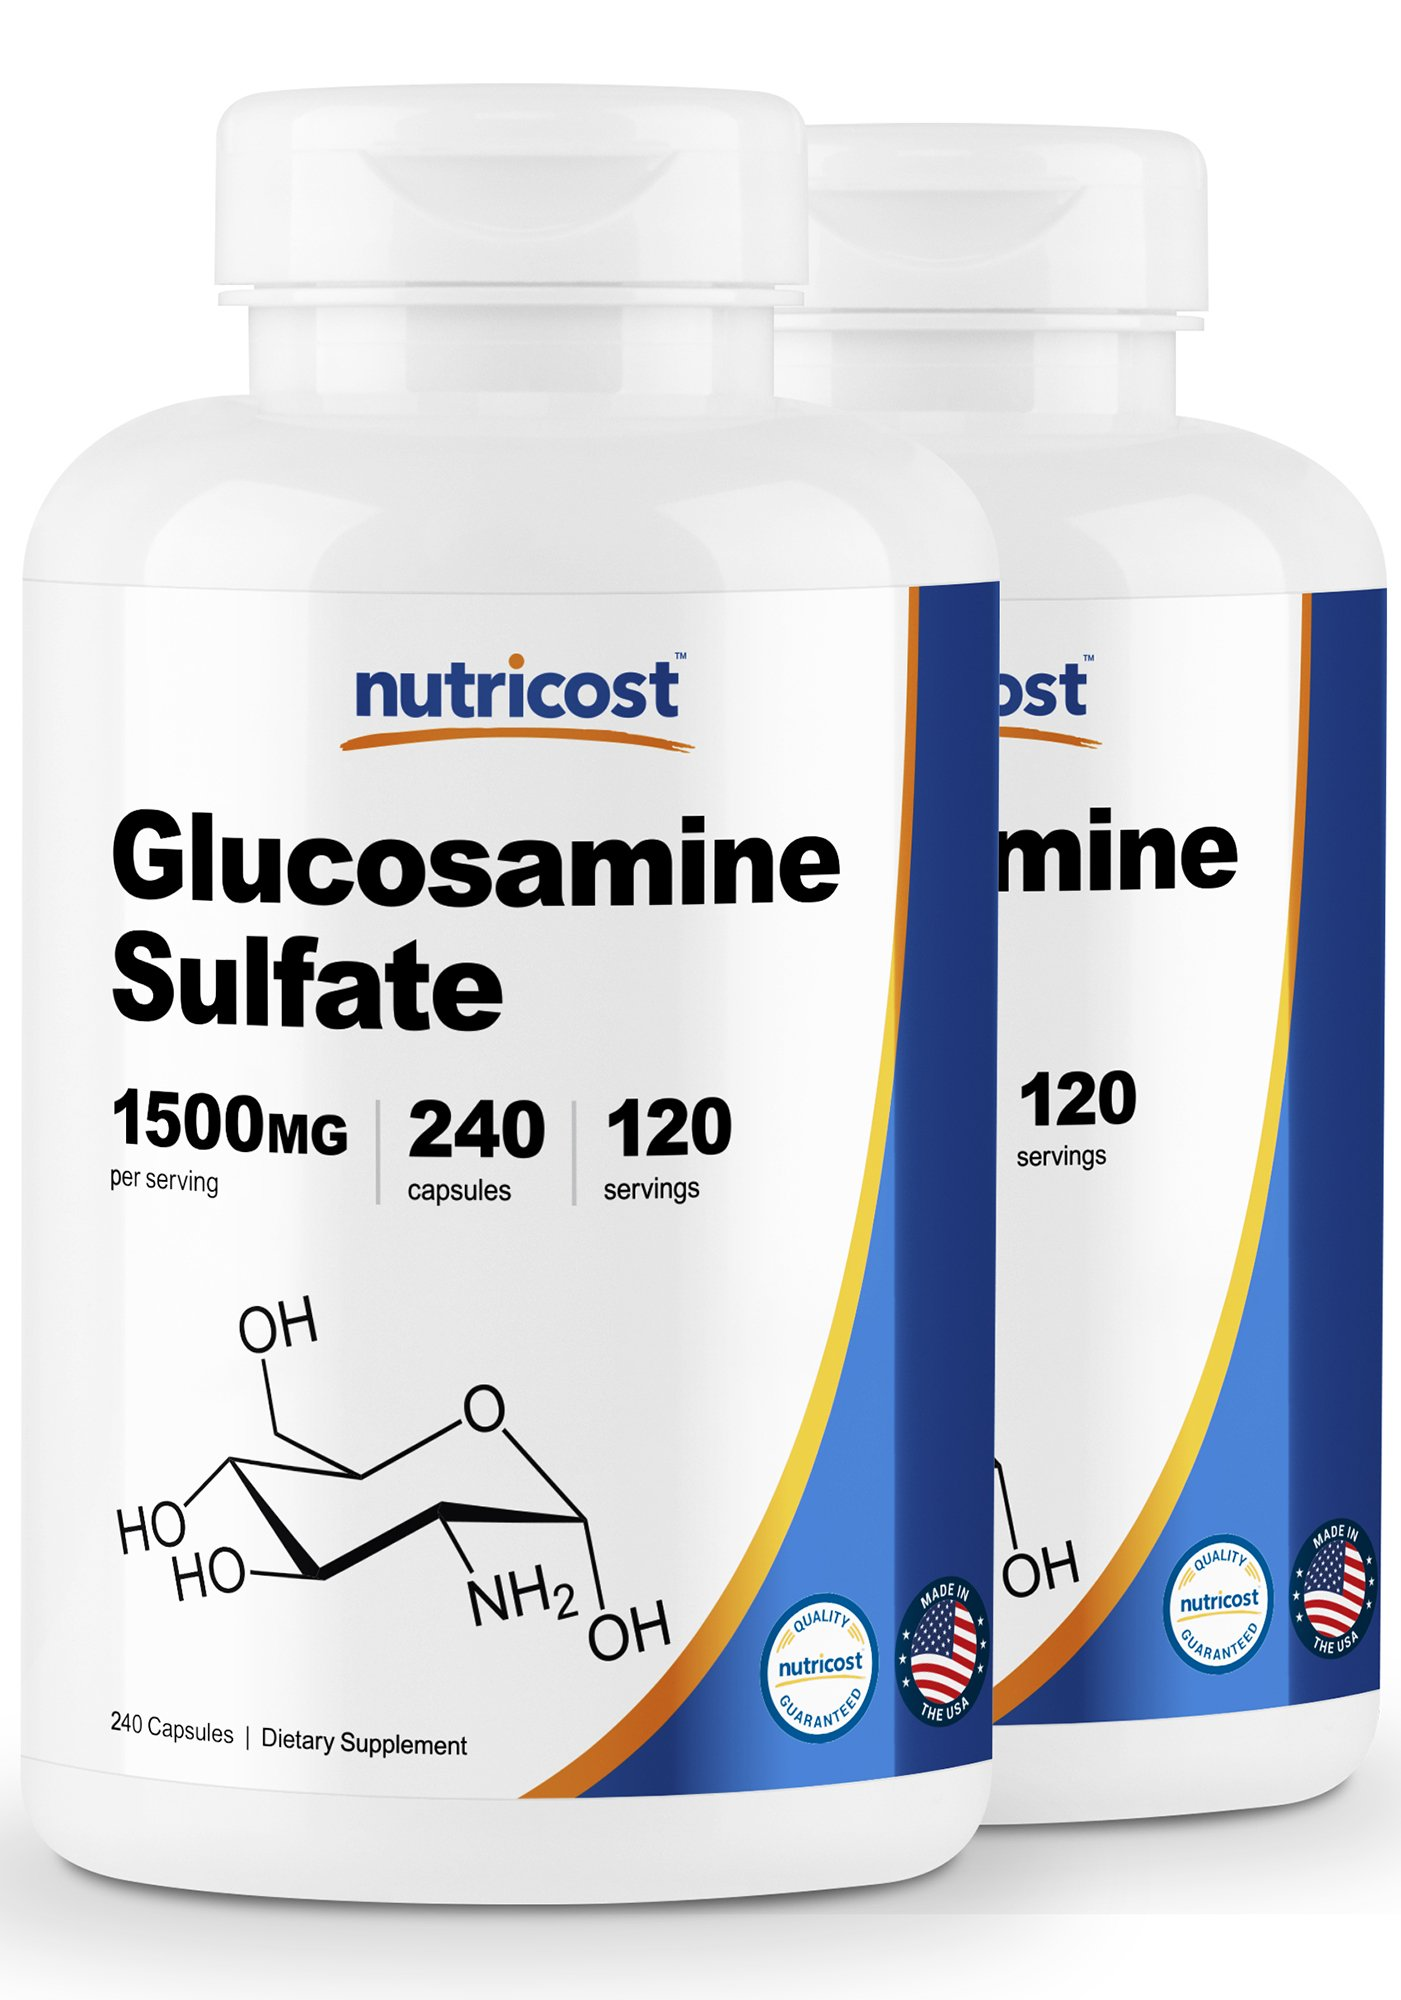 Nutricost Glucosamine Sulfate 750mg, 240 Capsules (2 Bottles) (1500mg per Serving) by Nutricost